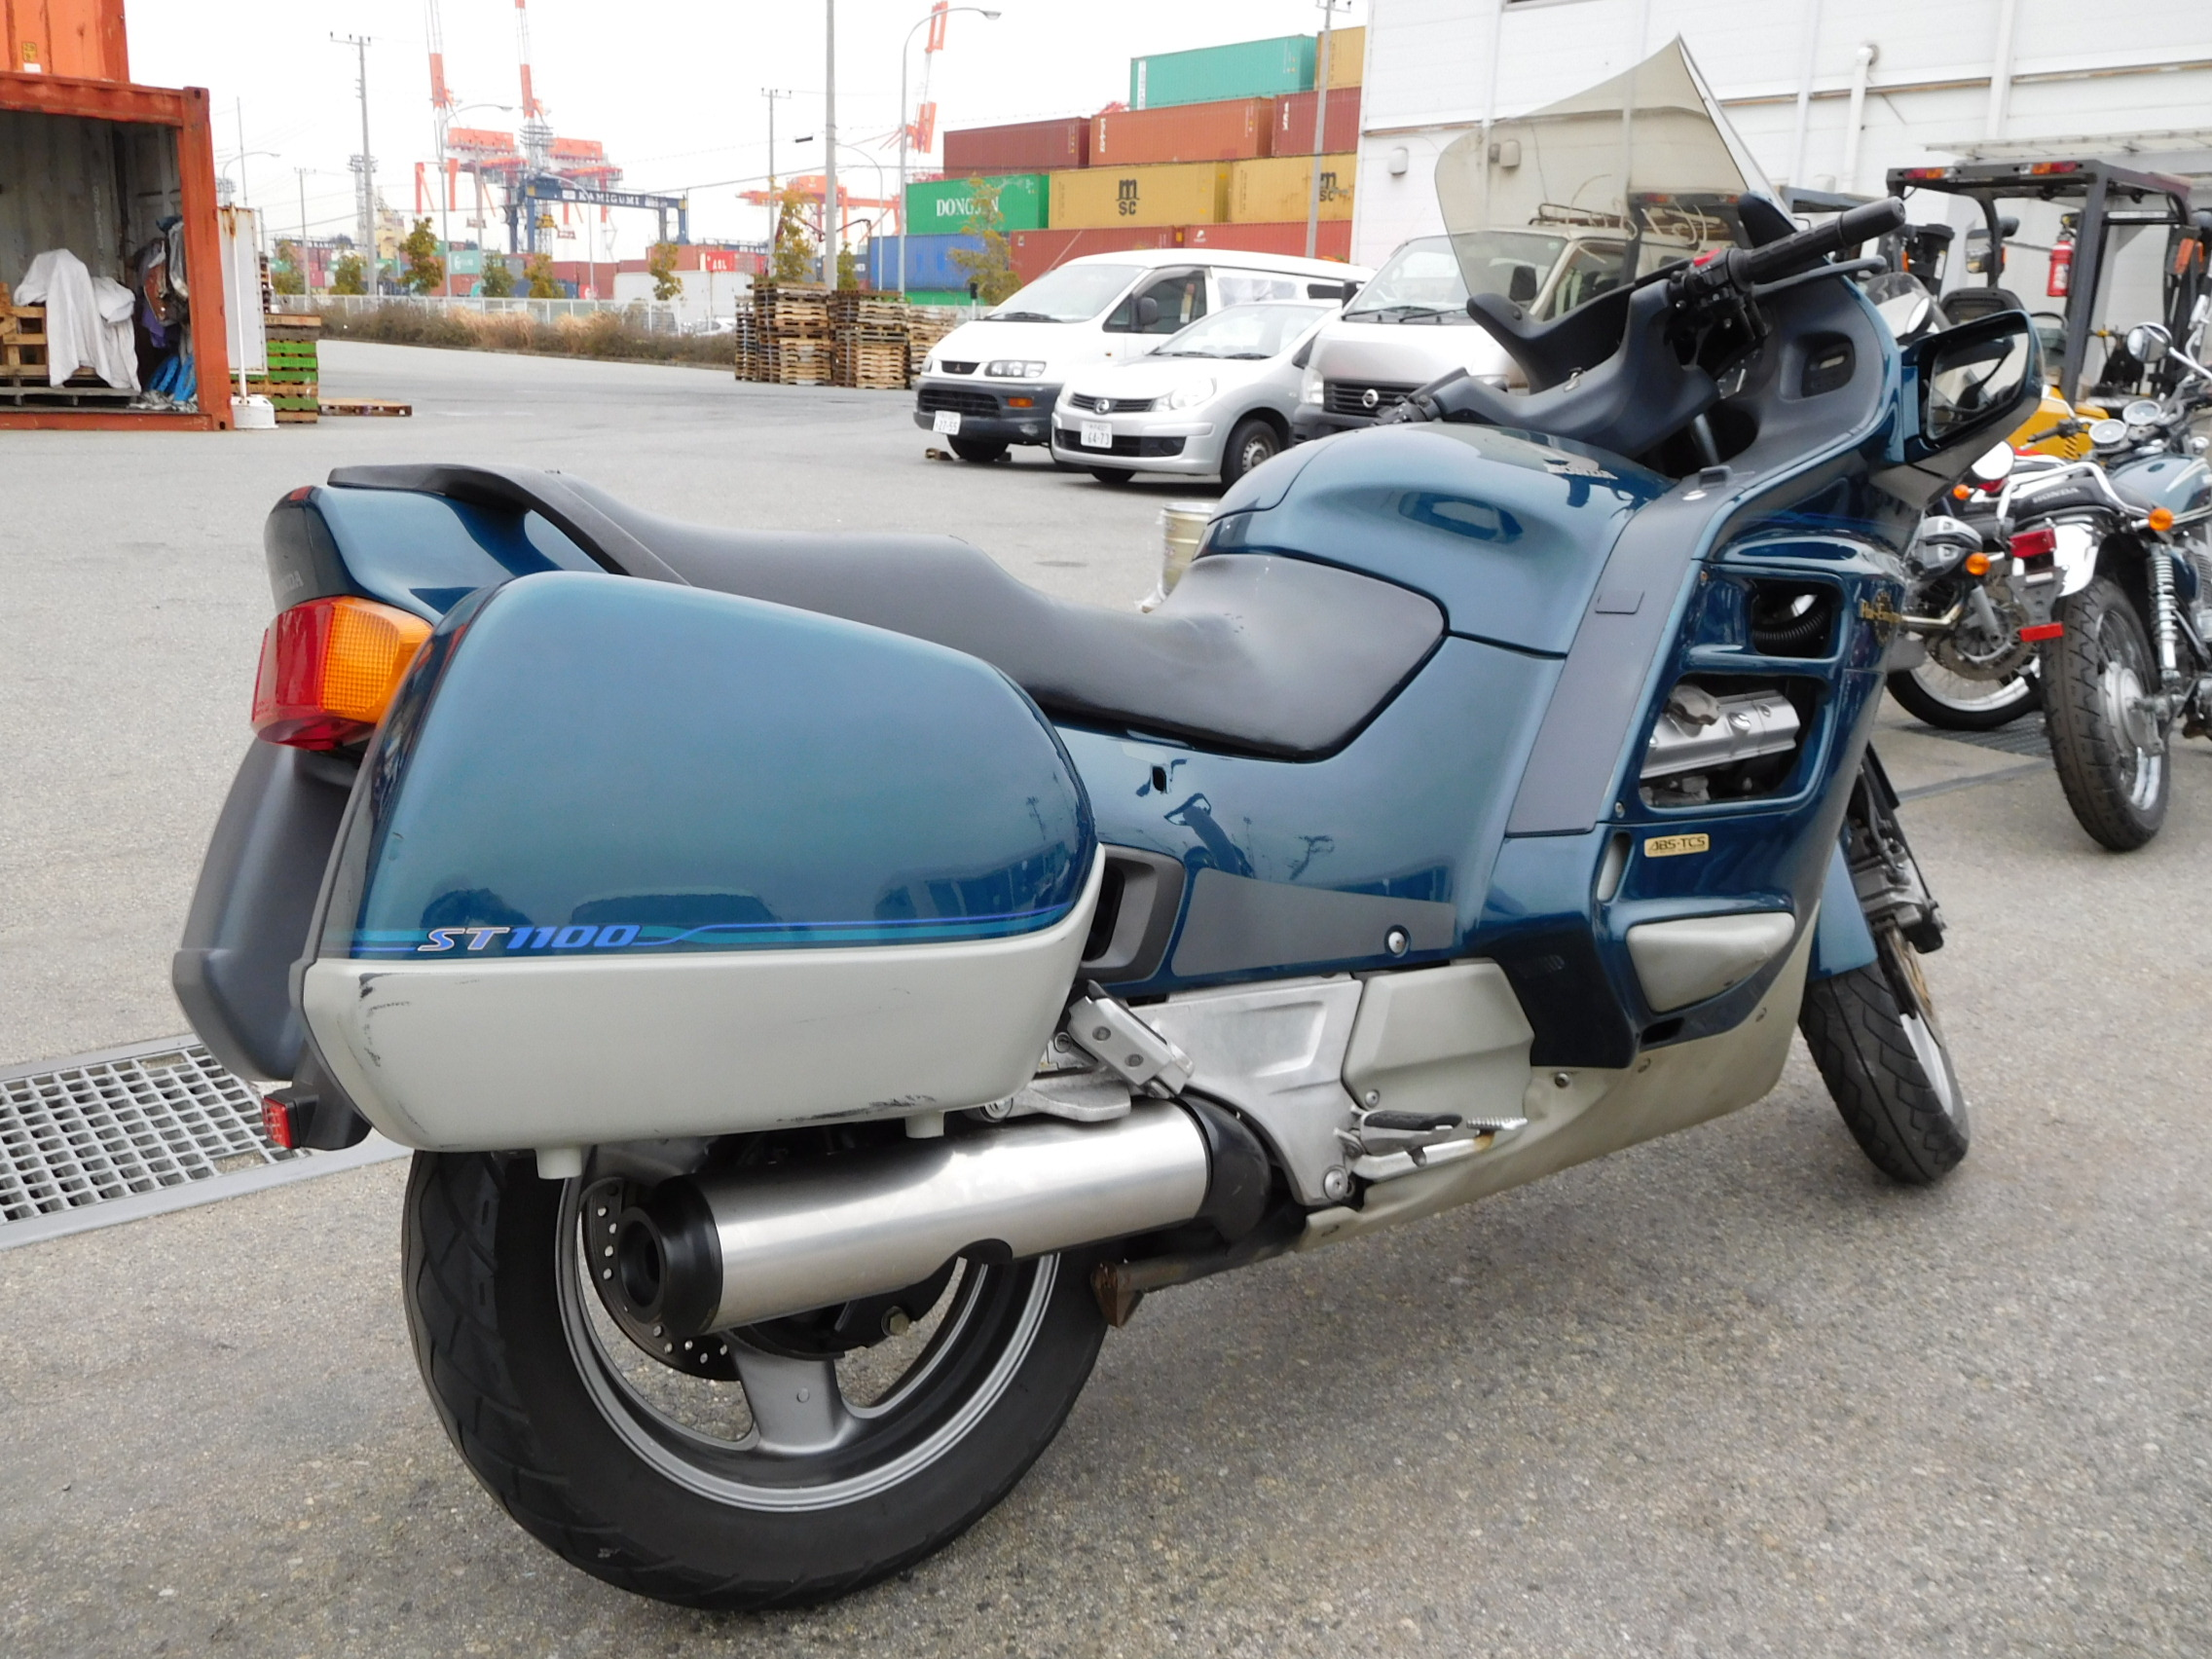 Honda ST1100 Pan European